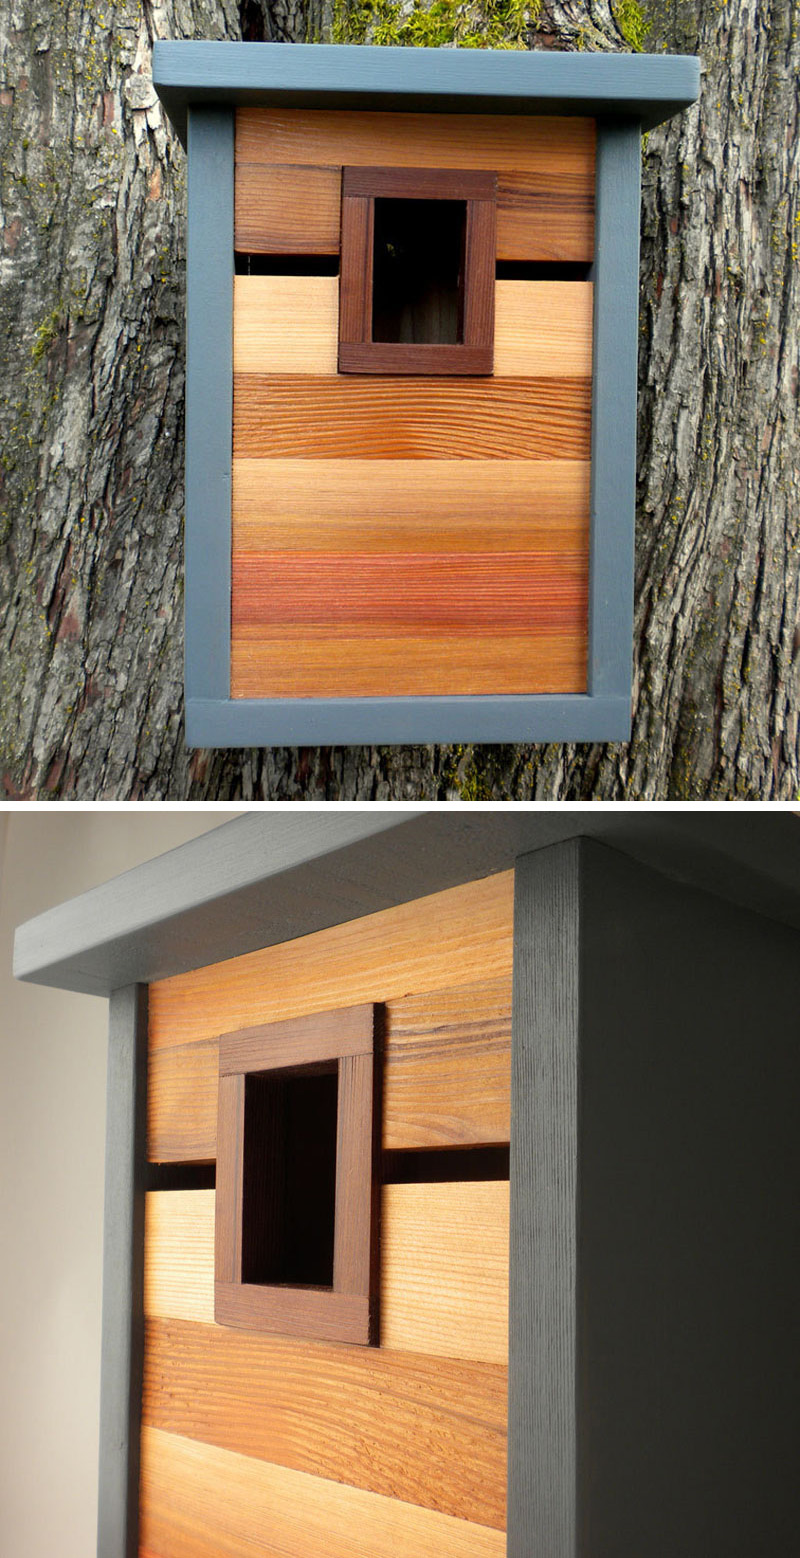 These Modern Wood Birdhouses Are Inspired By Craftsman ...